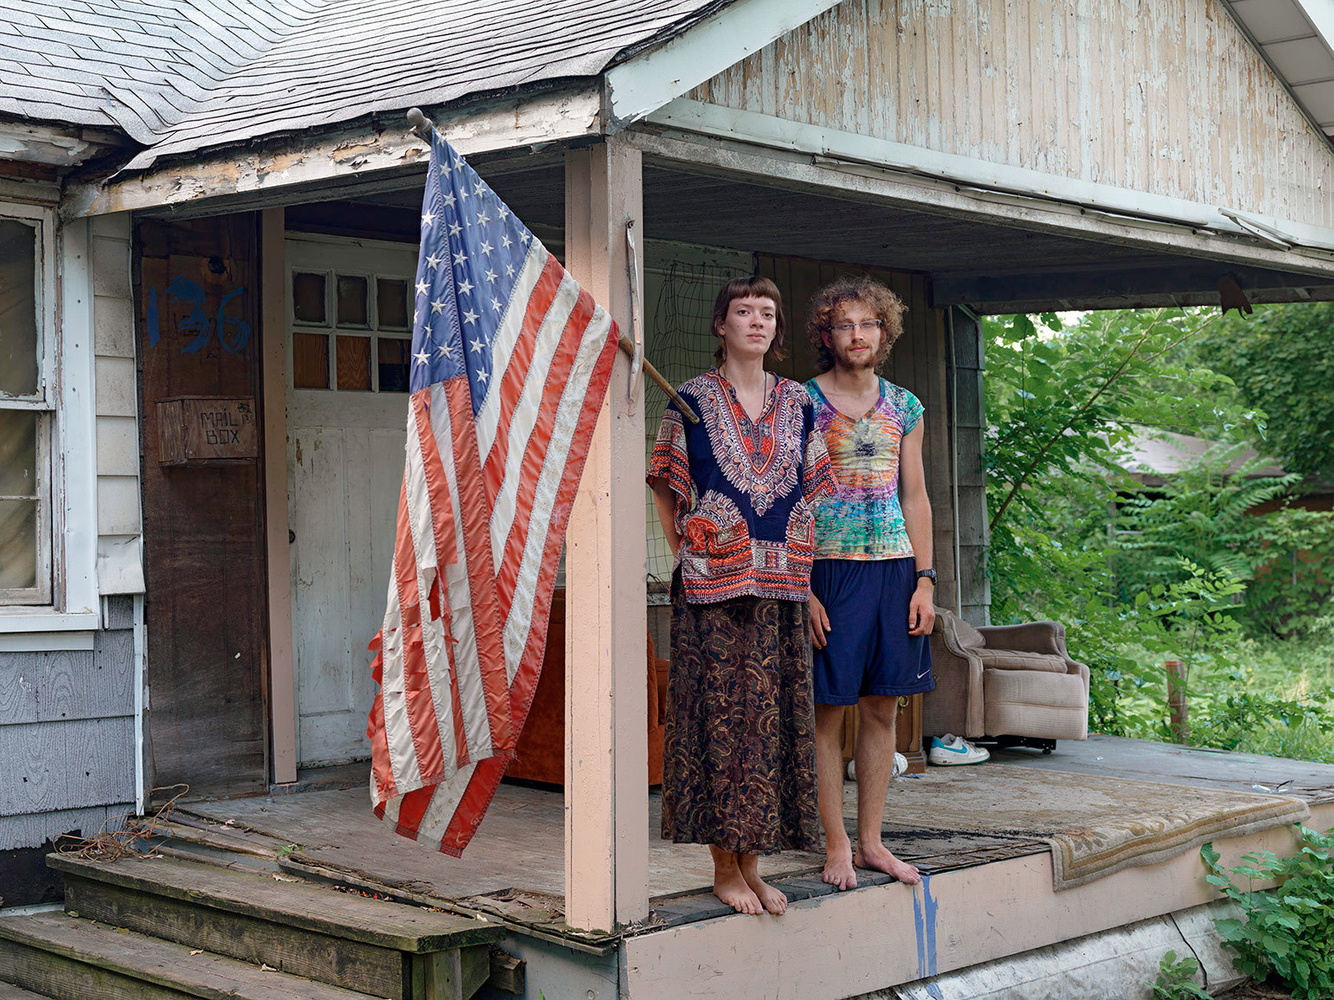 Shad and Sara Standing on the Front Porch of the Little House, Goldengate Street, Detroit 2013